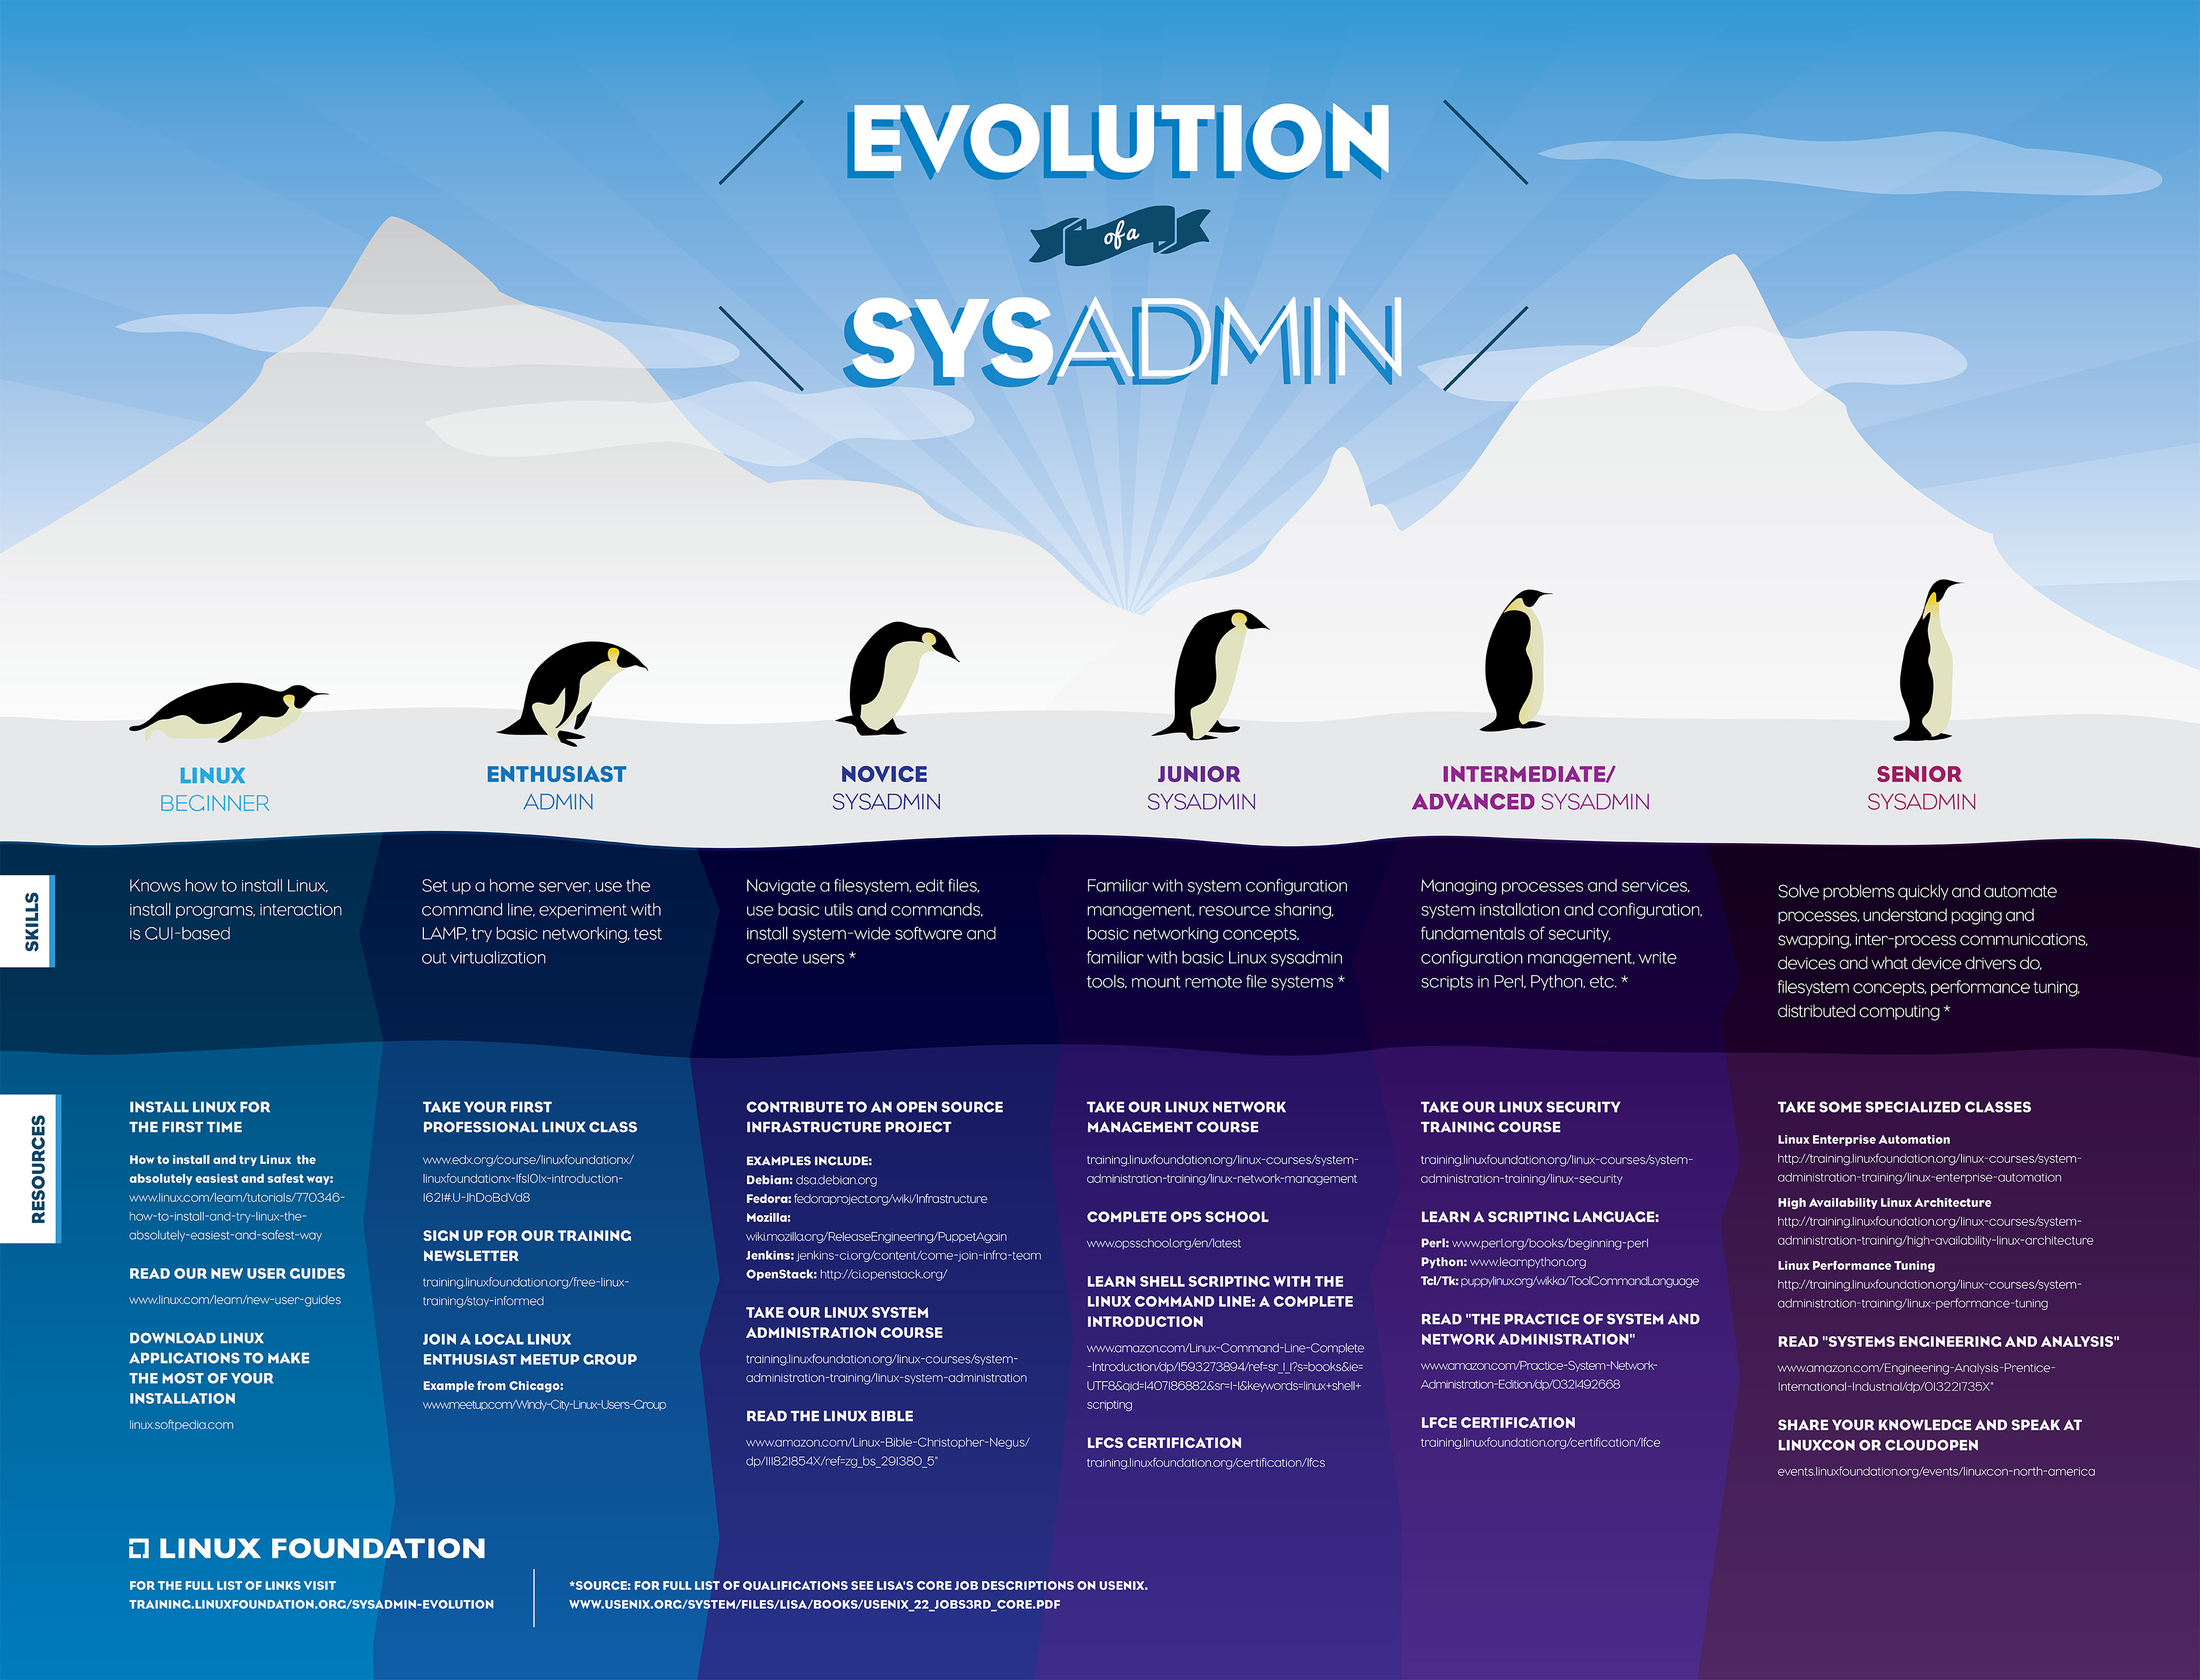 lftc evolution sysadmin